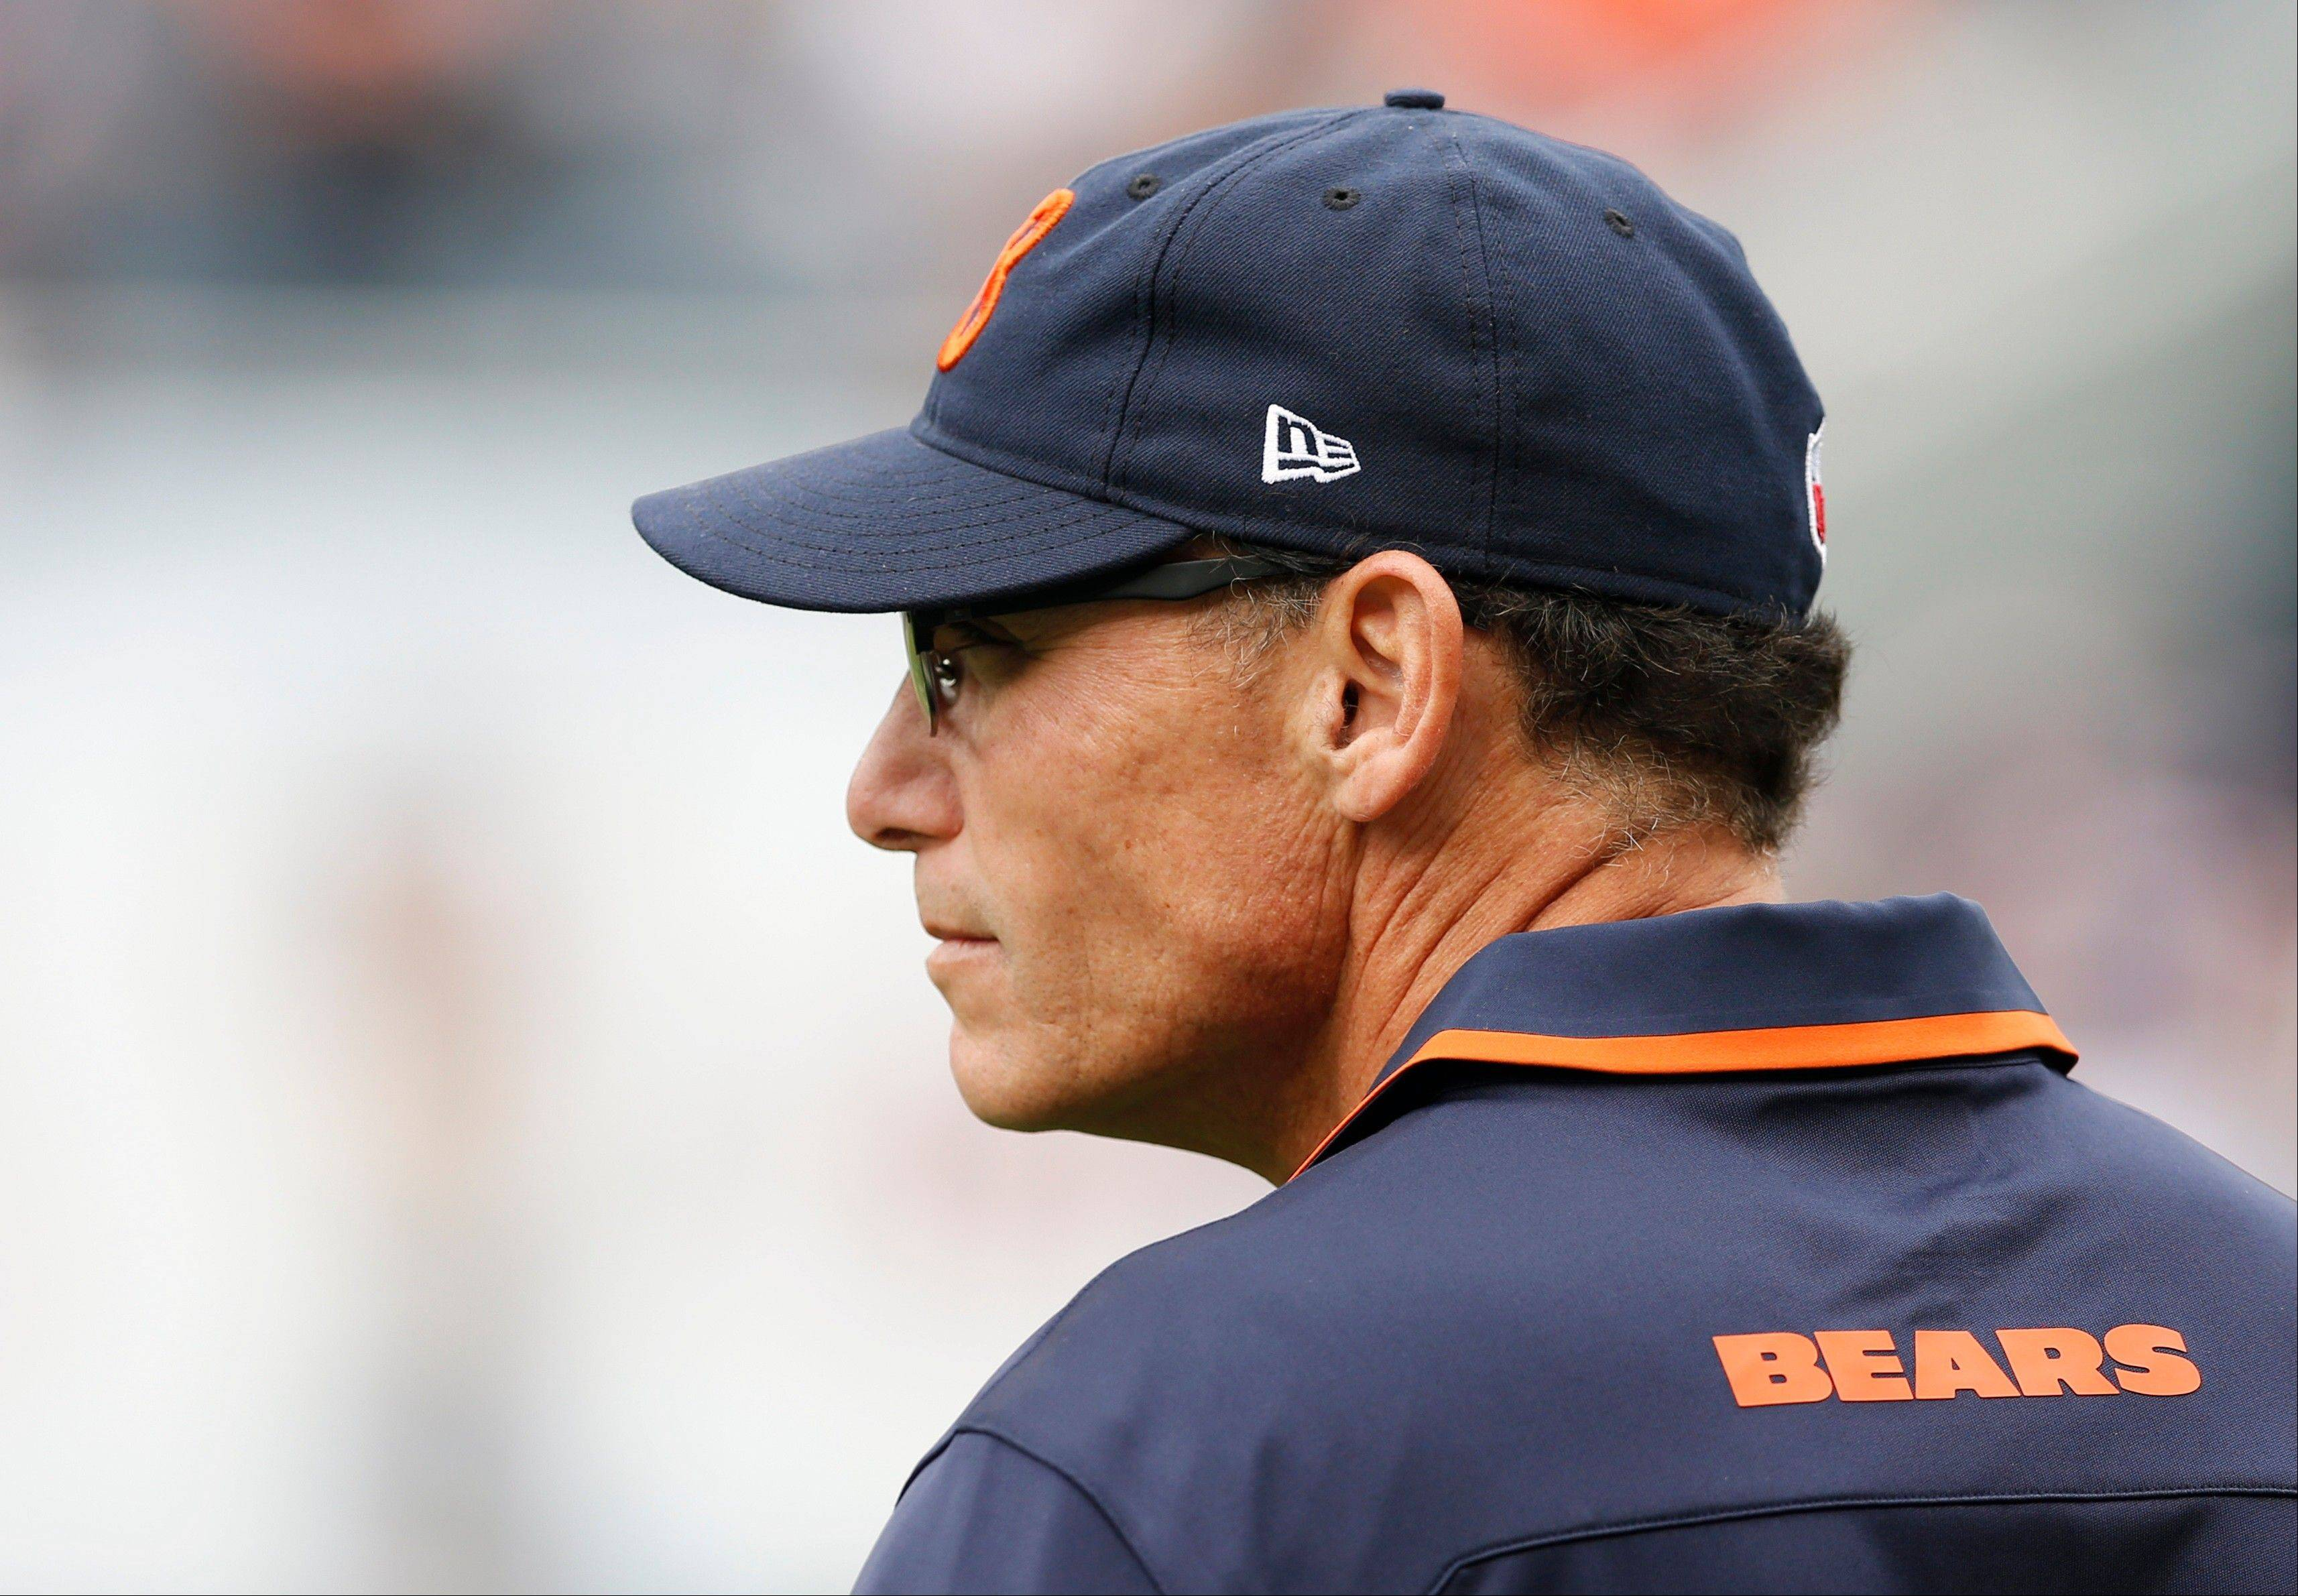 While happy to get a victory in his first game as Bears head coach, Marc Trestman said Monday that there's still plenty of room for improvement.